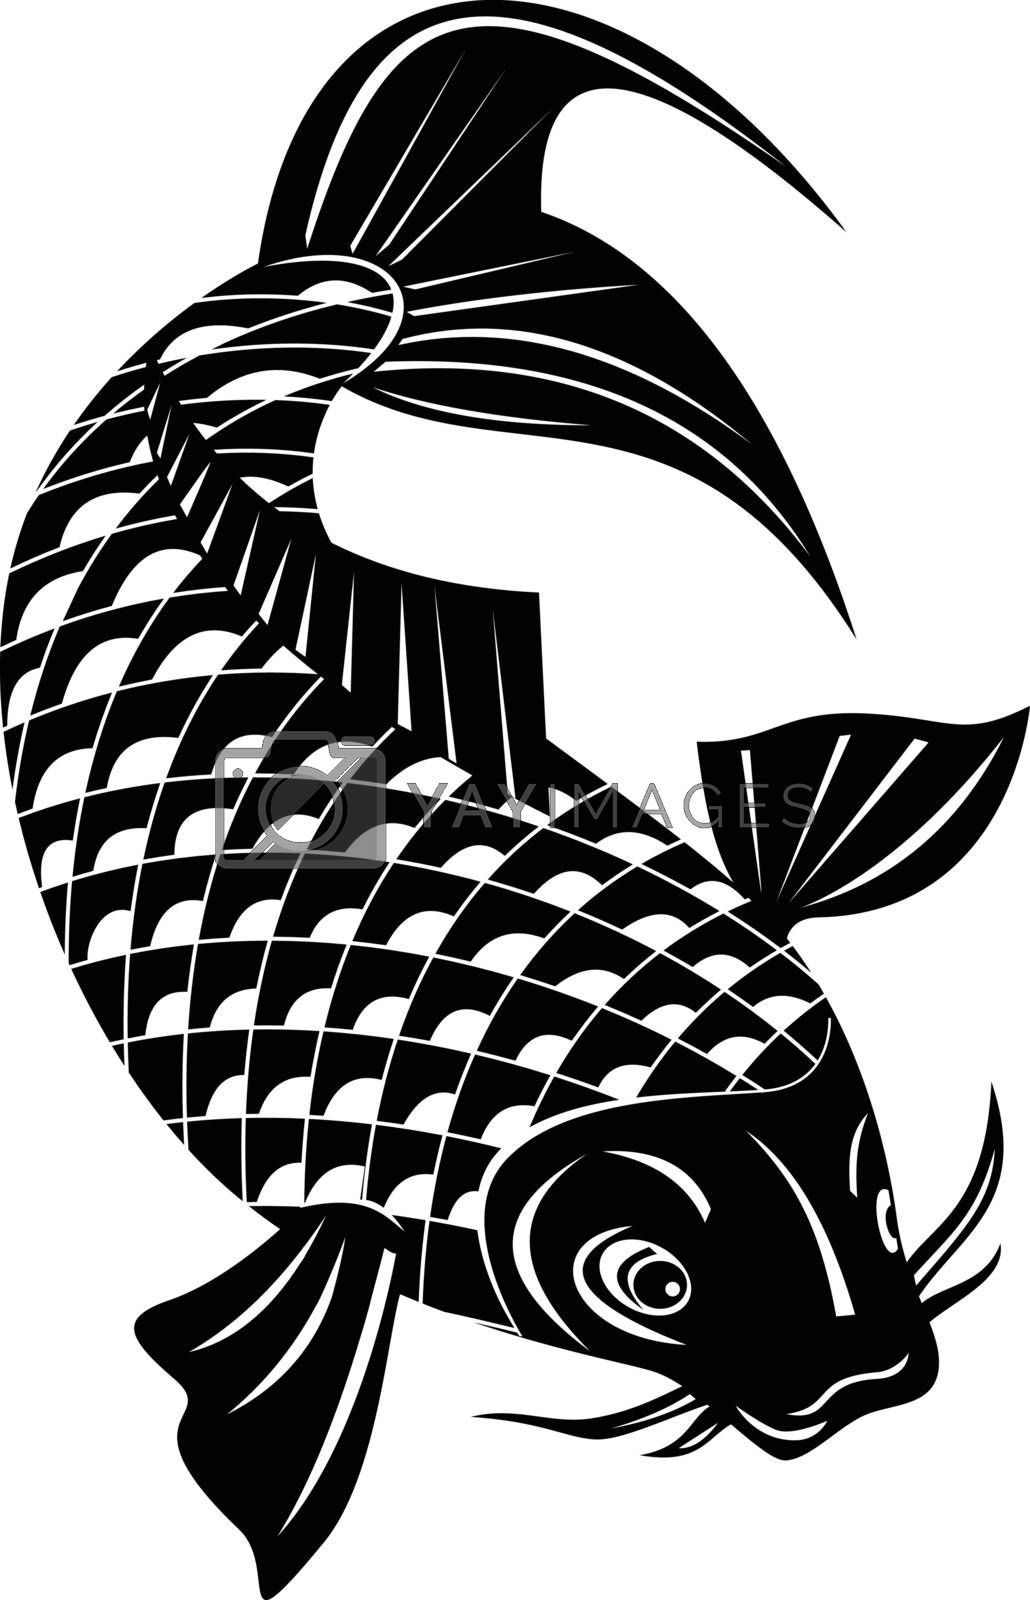 Retro woodcut style illustration of a koi, jinli or nishikigoi brocaded carp, a colored variety of the Amur carp Cyprinus rubrofuscus swimming down on isolated background done in black and white.